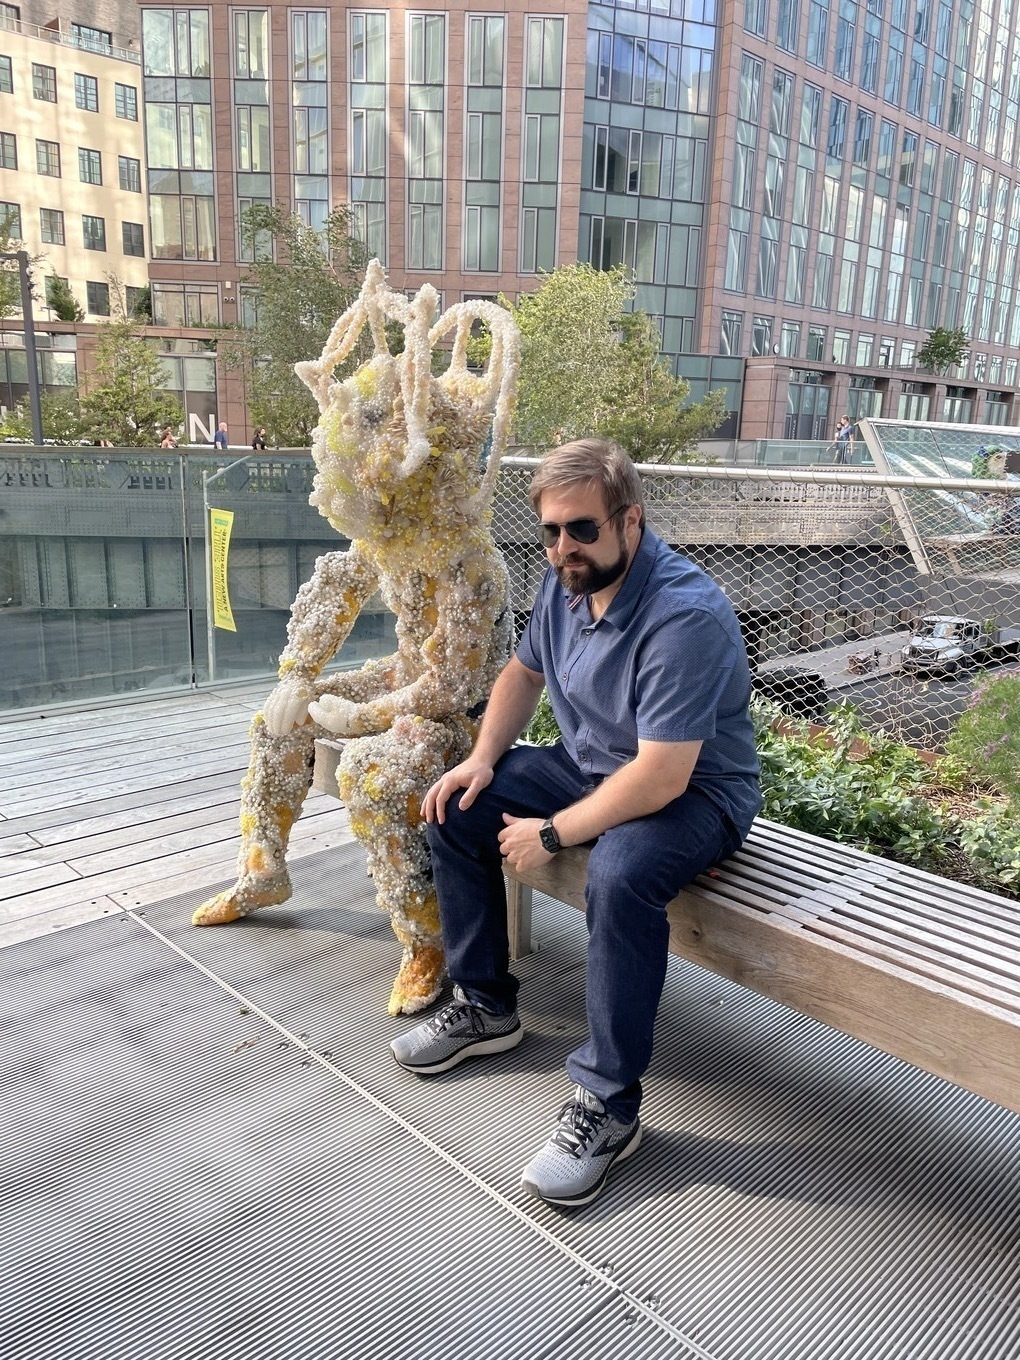 Me posing next to a statue on a bench at Atlantic Yards